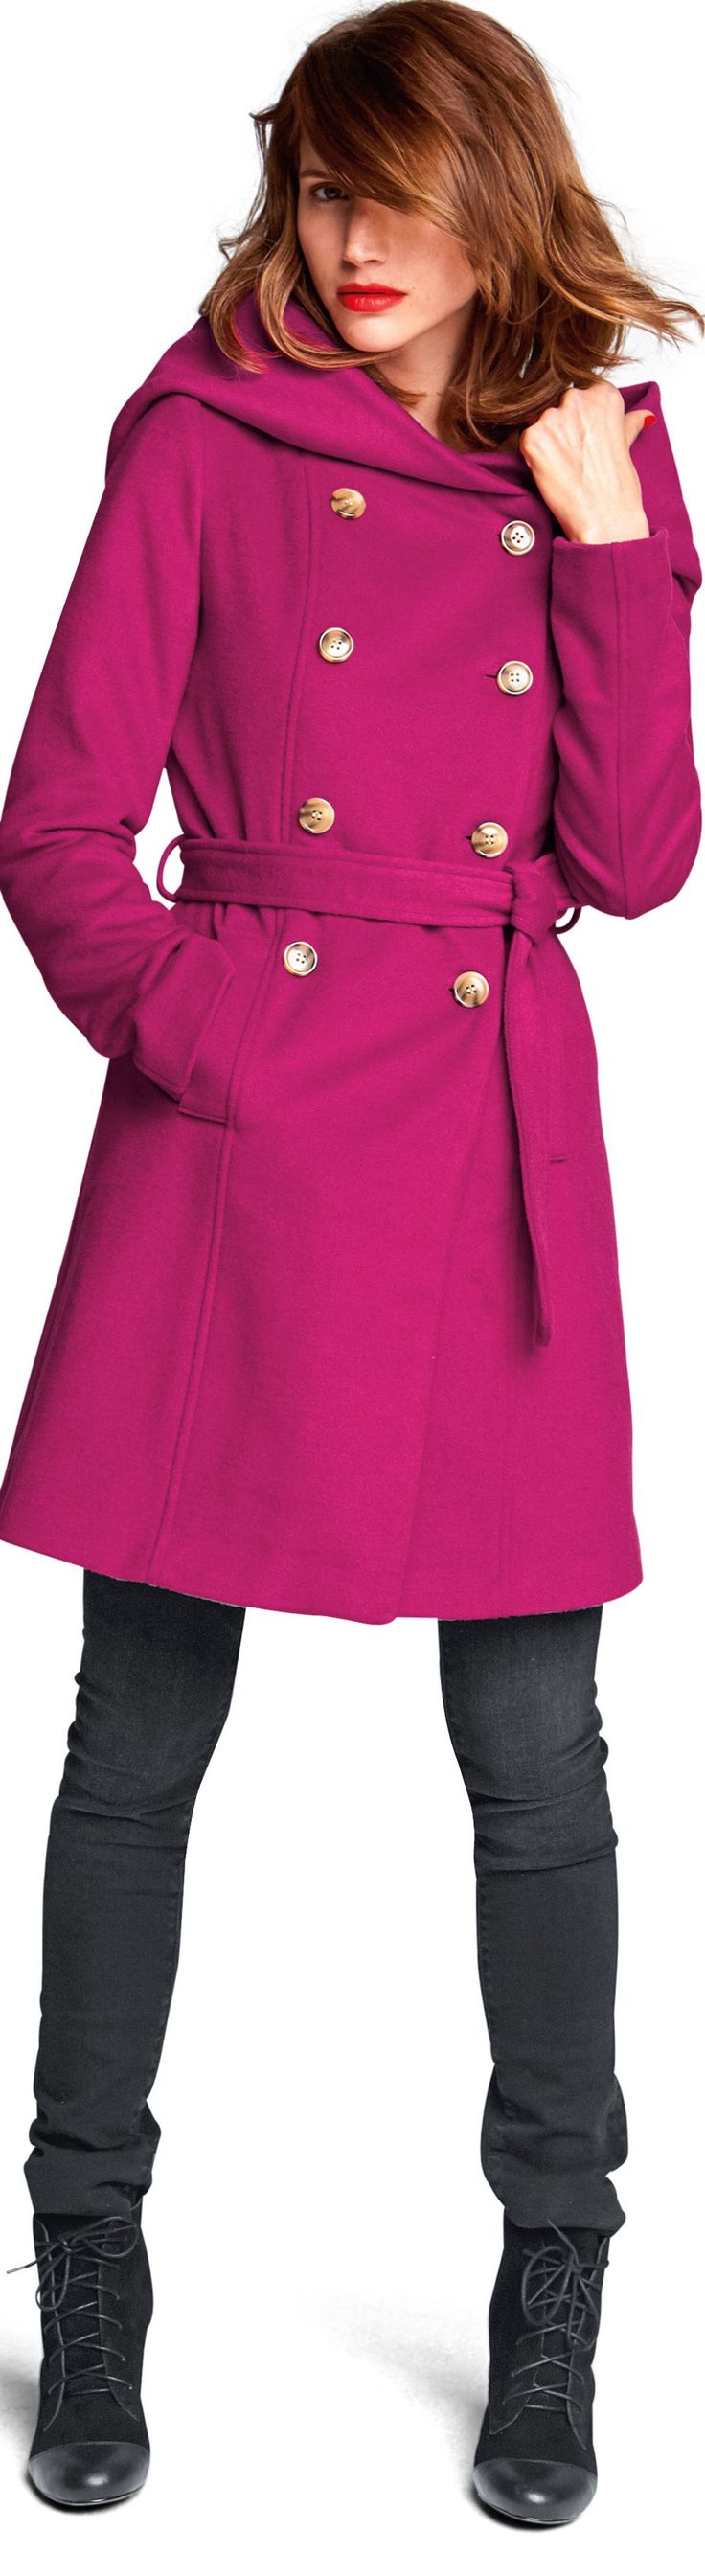 Shop the latest styles of Womens Coats at Macys. Check out our designer collection of chic coats including peacoats, trench coats, puffer coats and more! Timelessly fashionable, a peacoat is one of the best choices for revamping your fall and winter wardrobe. Perfect for pairing with trousers, this style is a great option for incorporating.